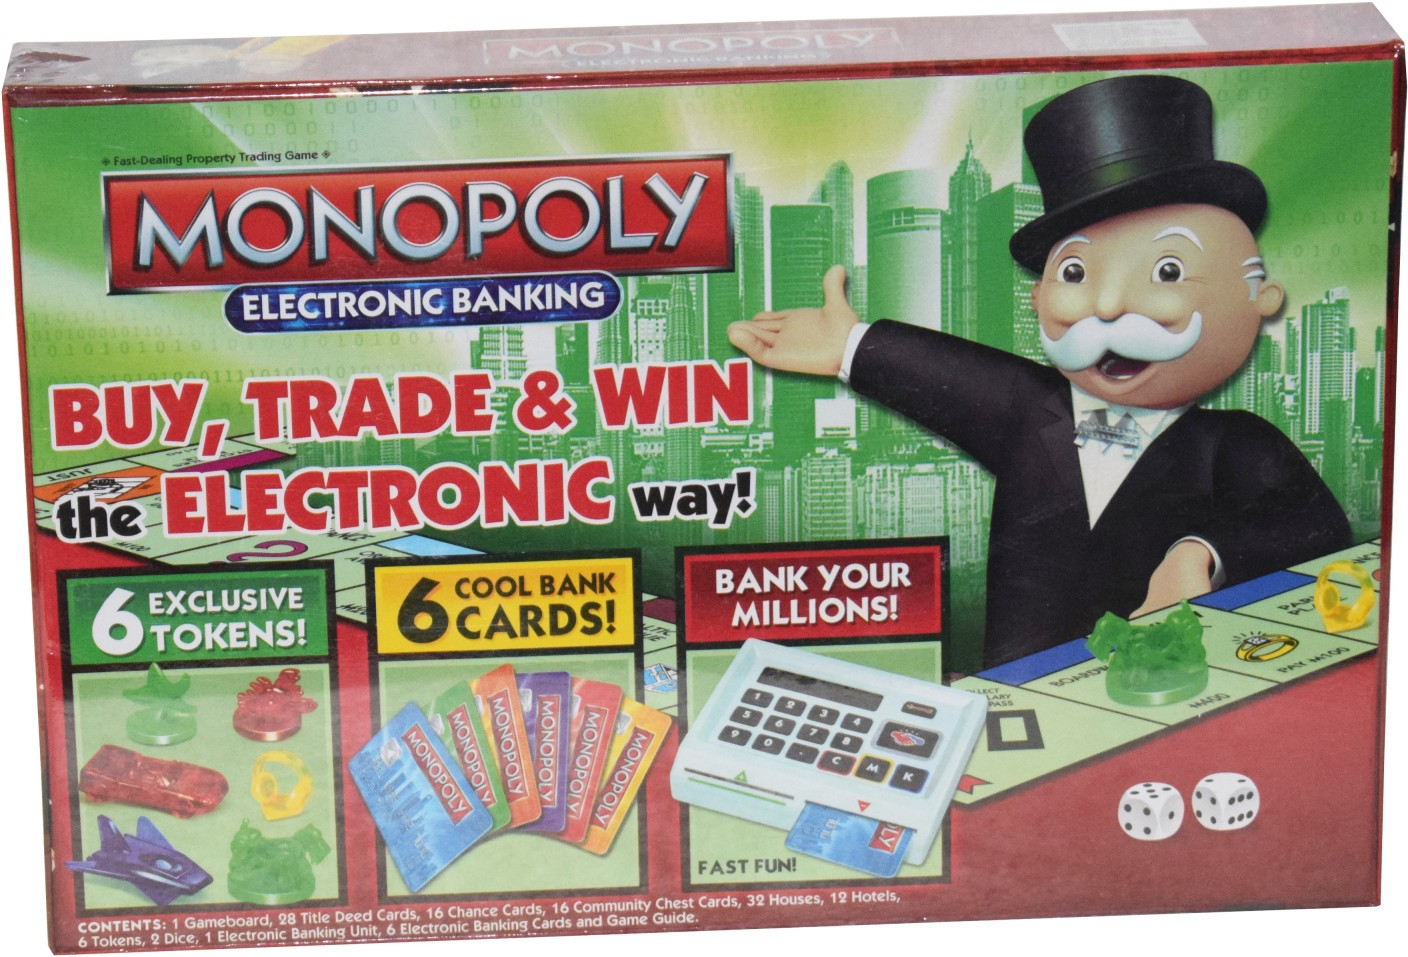 Kiditos monopoly electronic banking board game add to cart